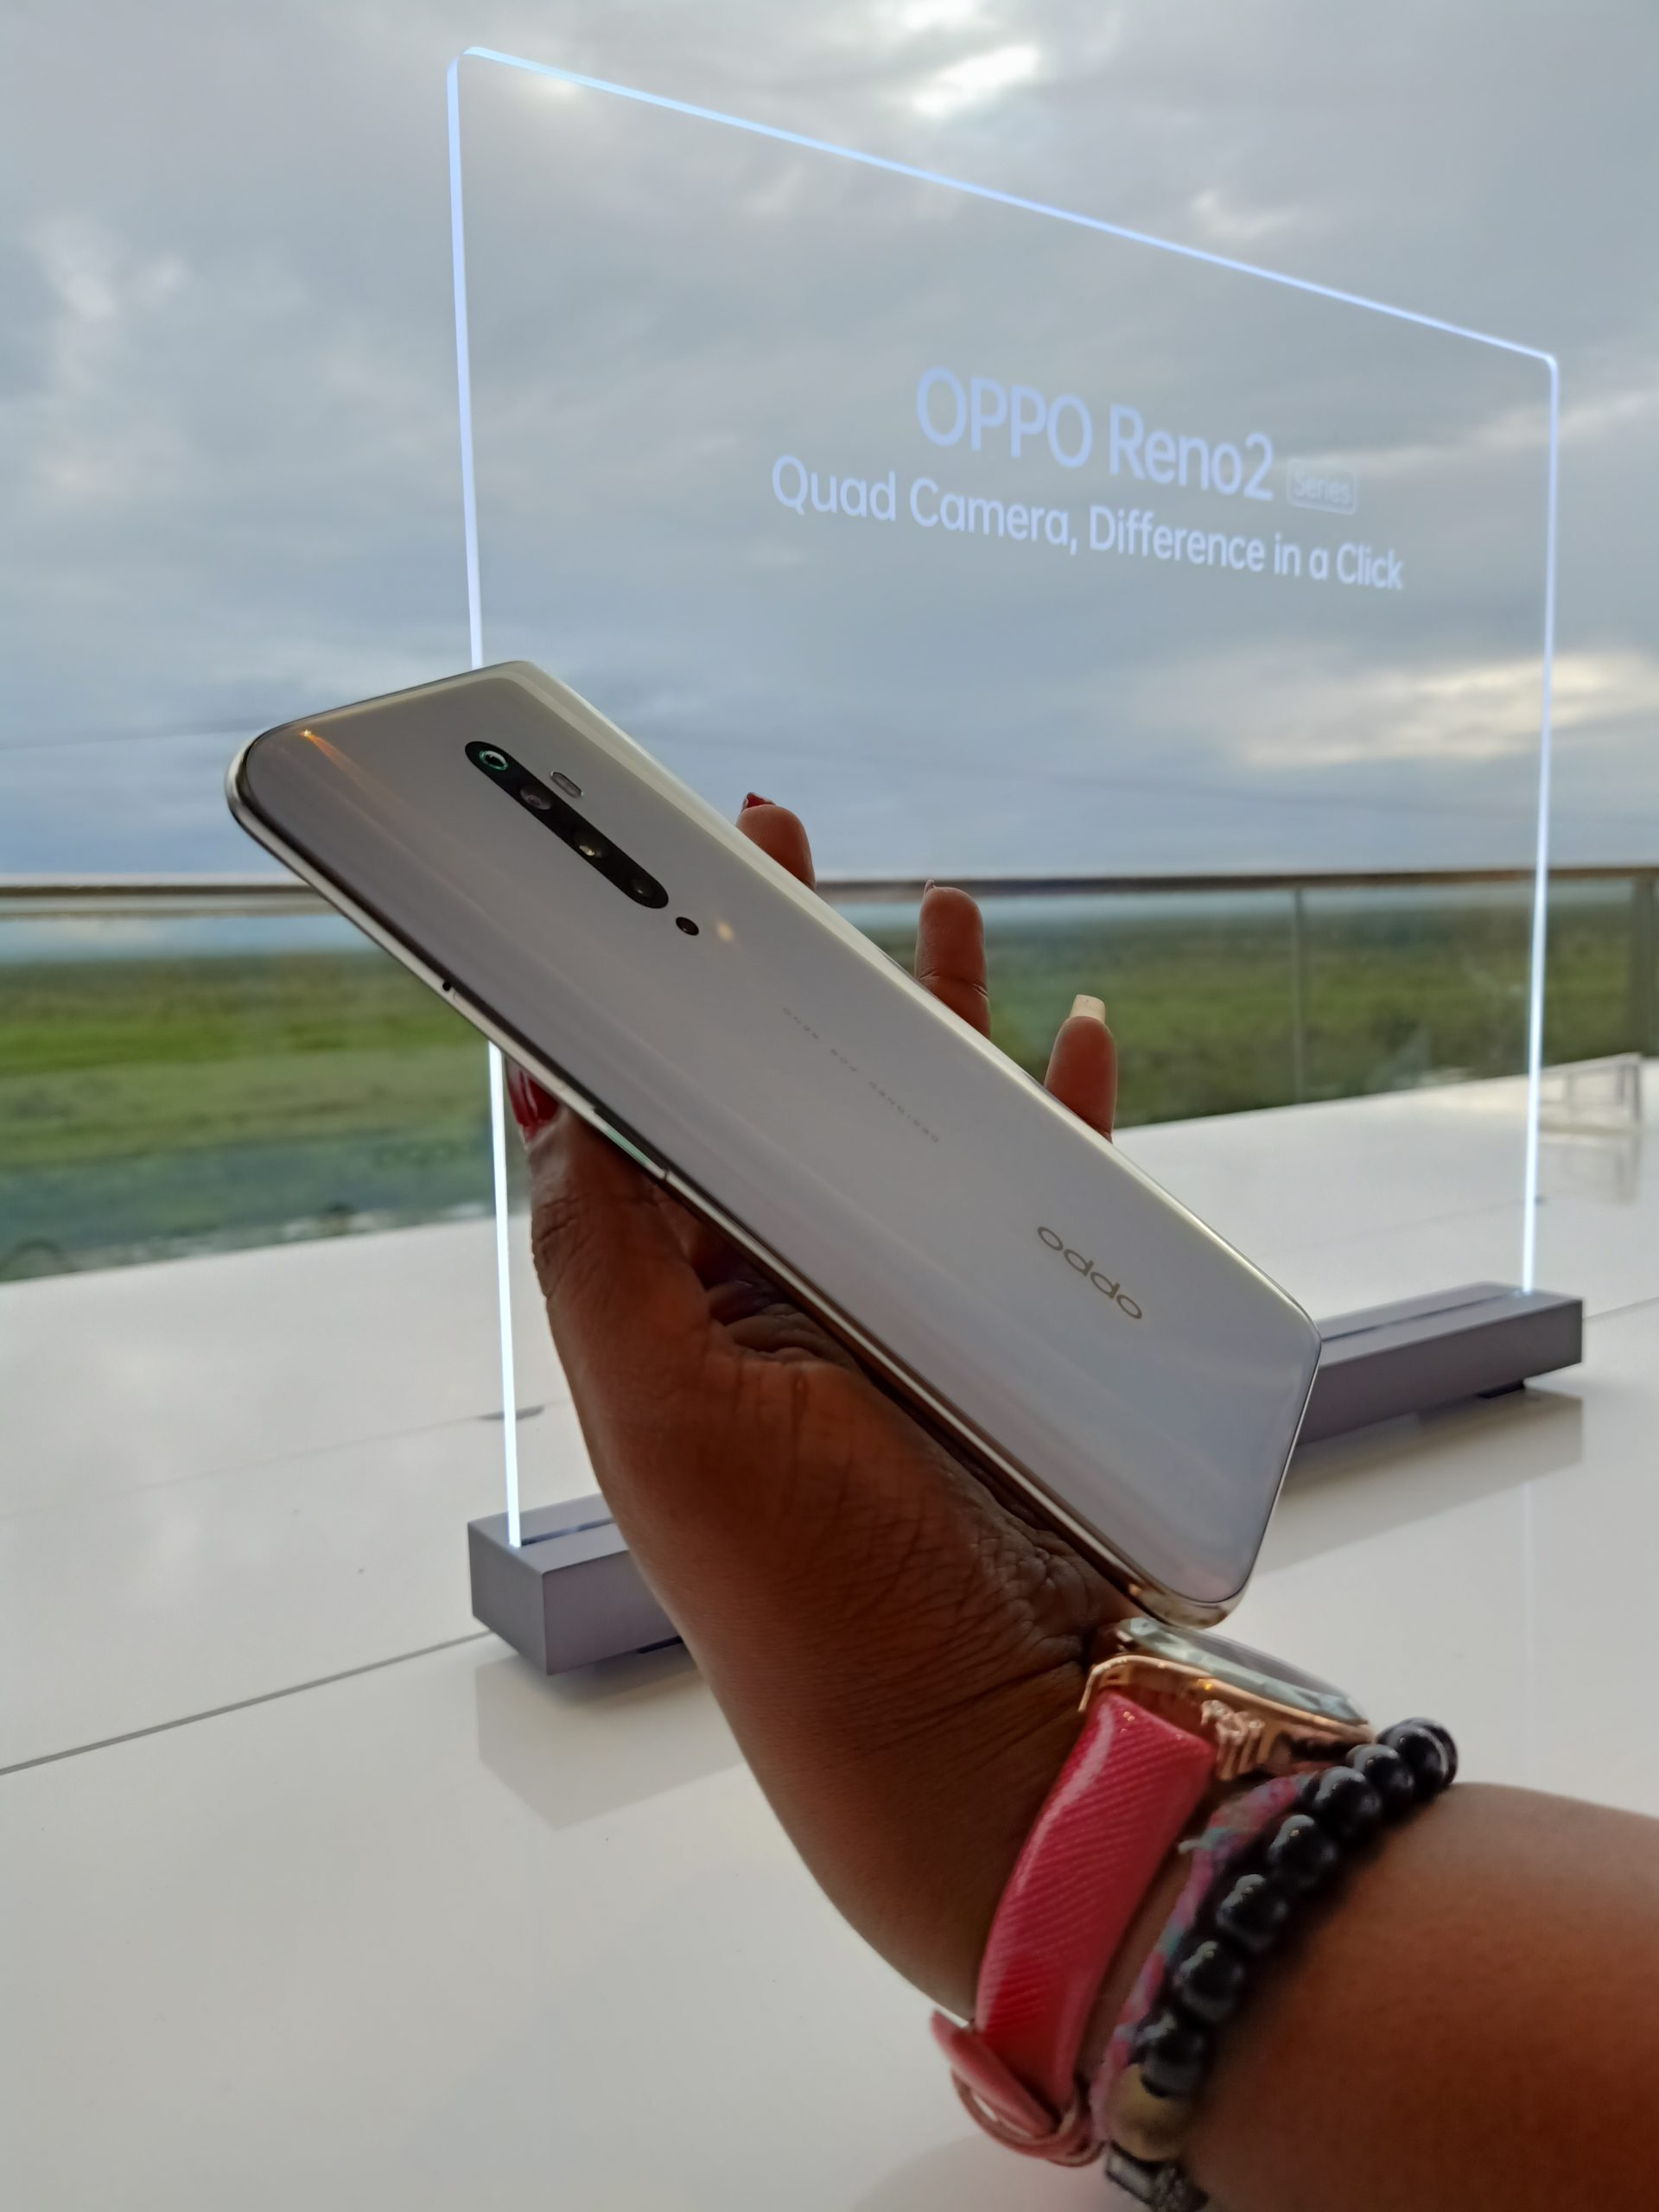 OPPO Kenya launches Reno 2F for photography, video lovers (Photos)